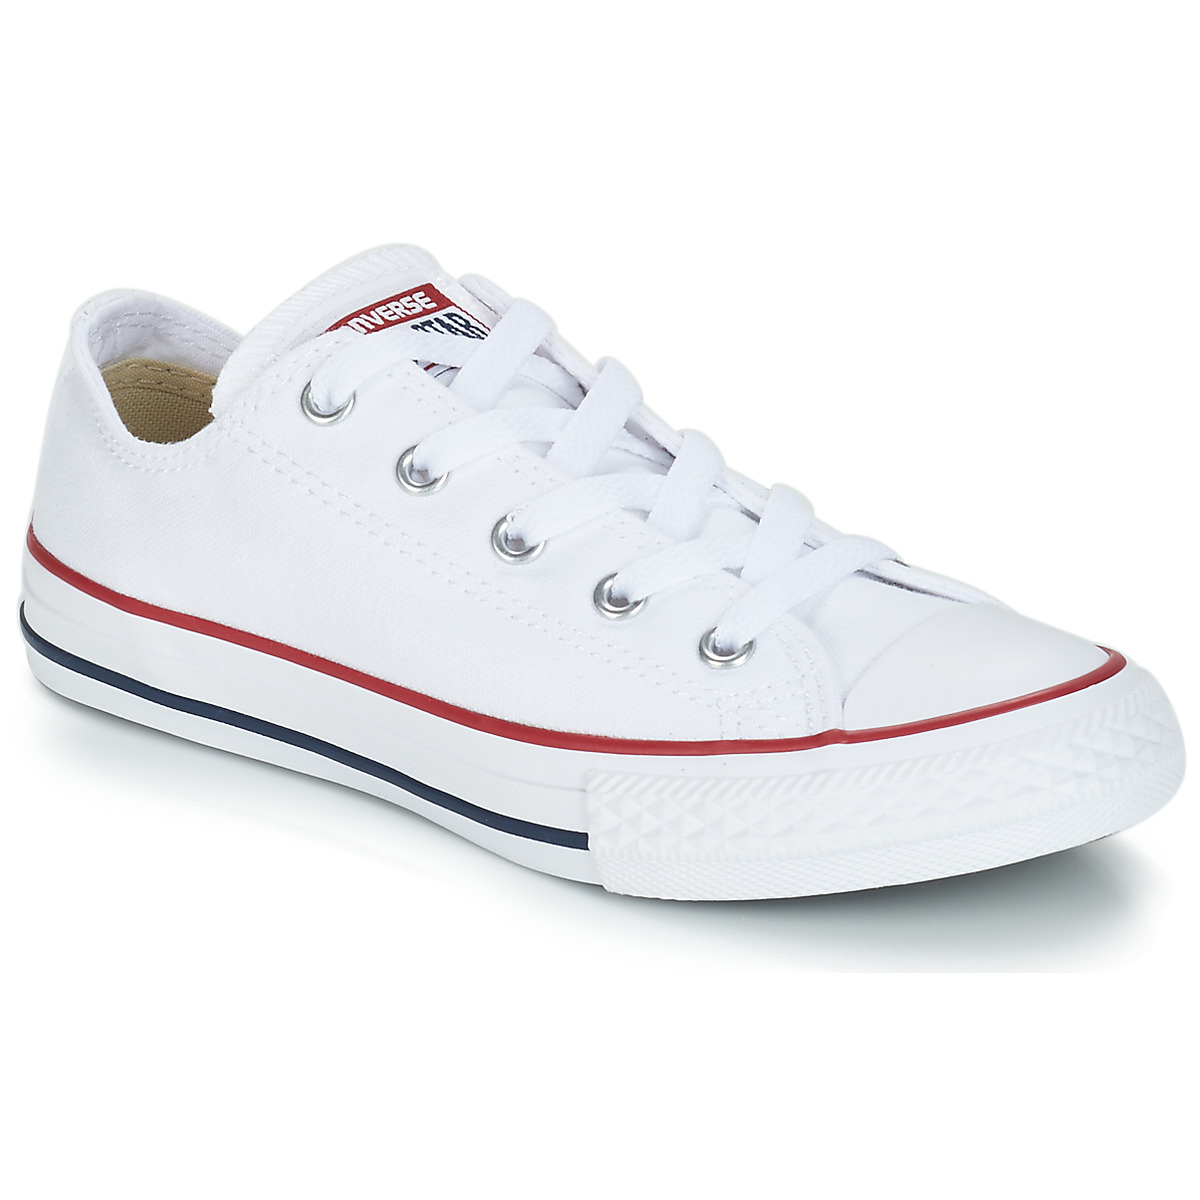 Converse CHUCK TAYLOR ALL STAR CORE OX άσπρο / Optical